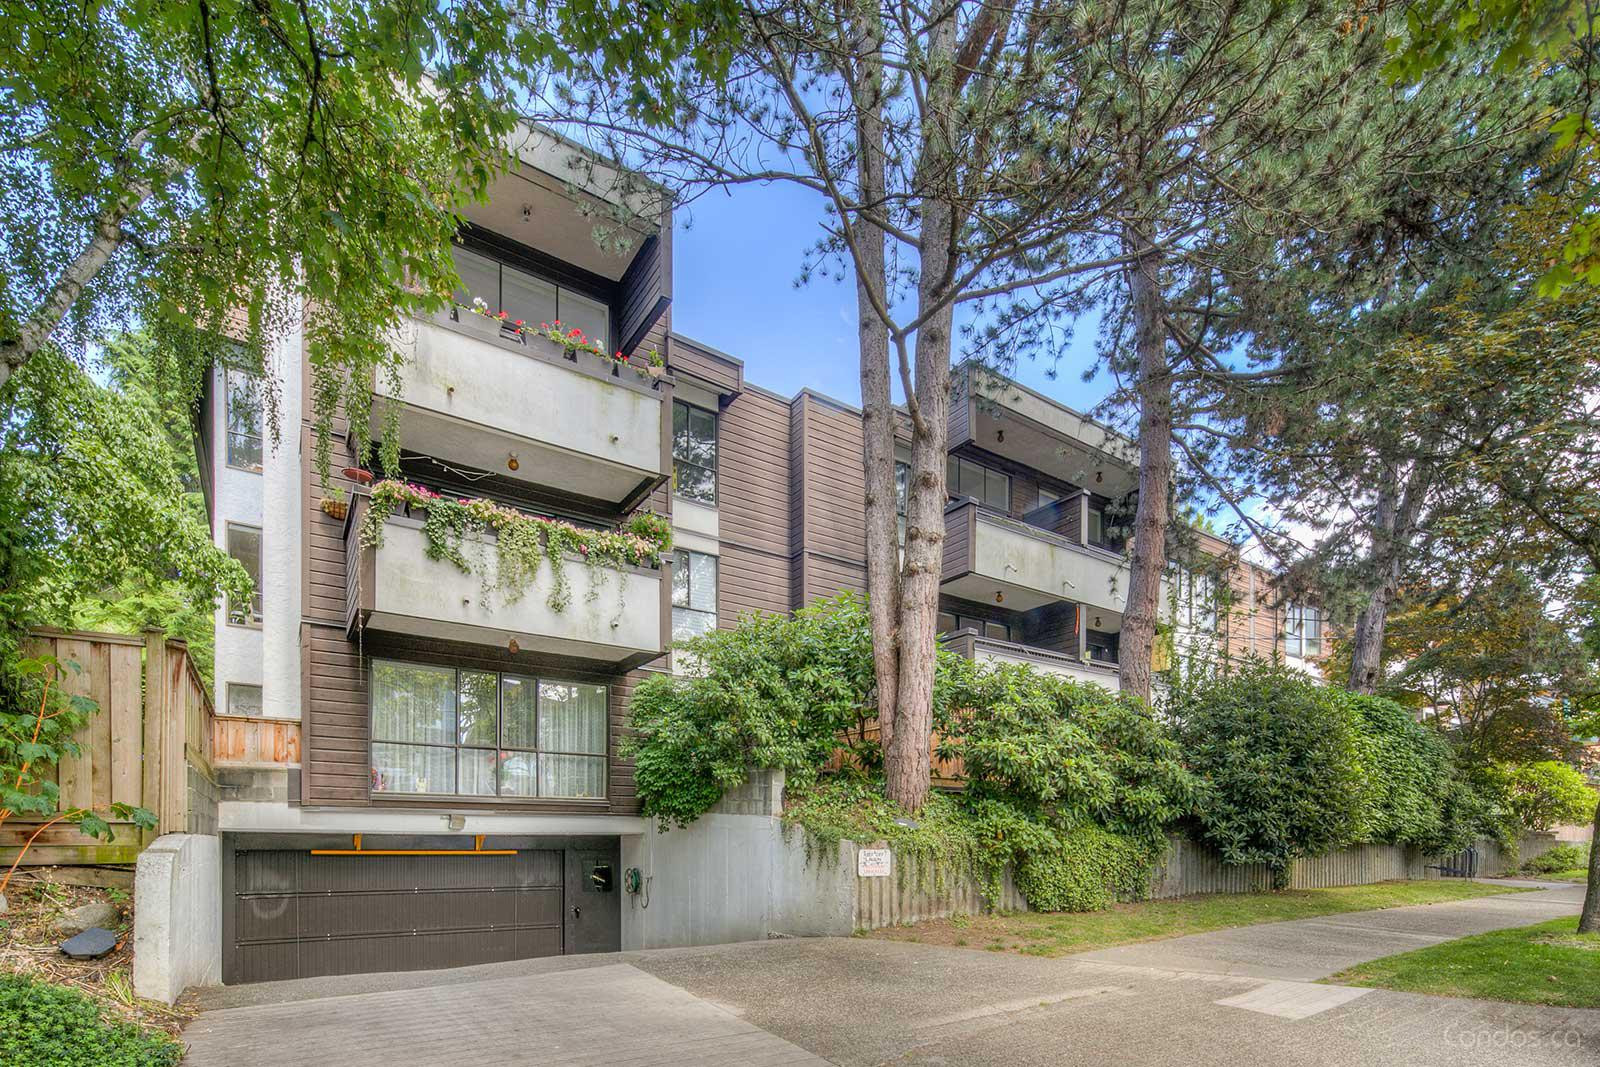 West Wind at 2255 W 8th Ave, Vancouver 1